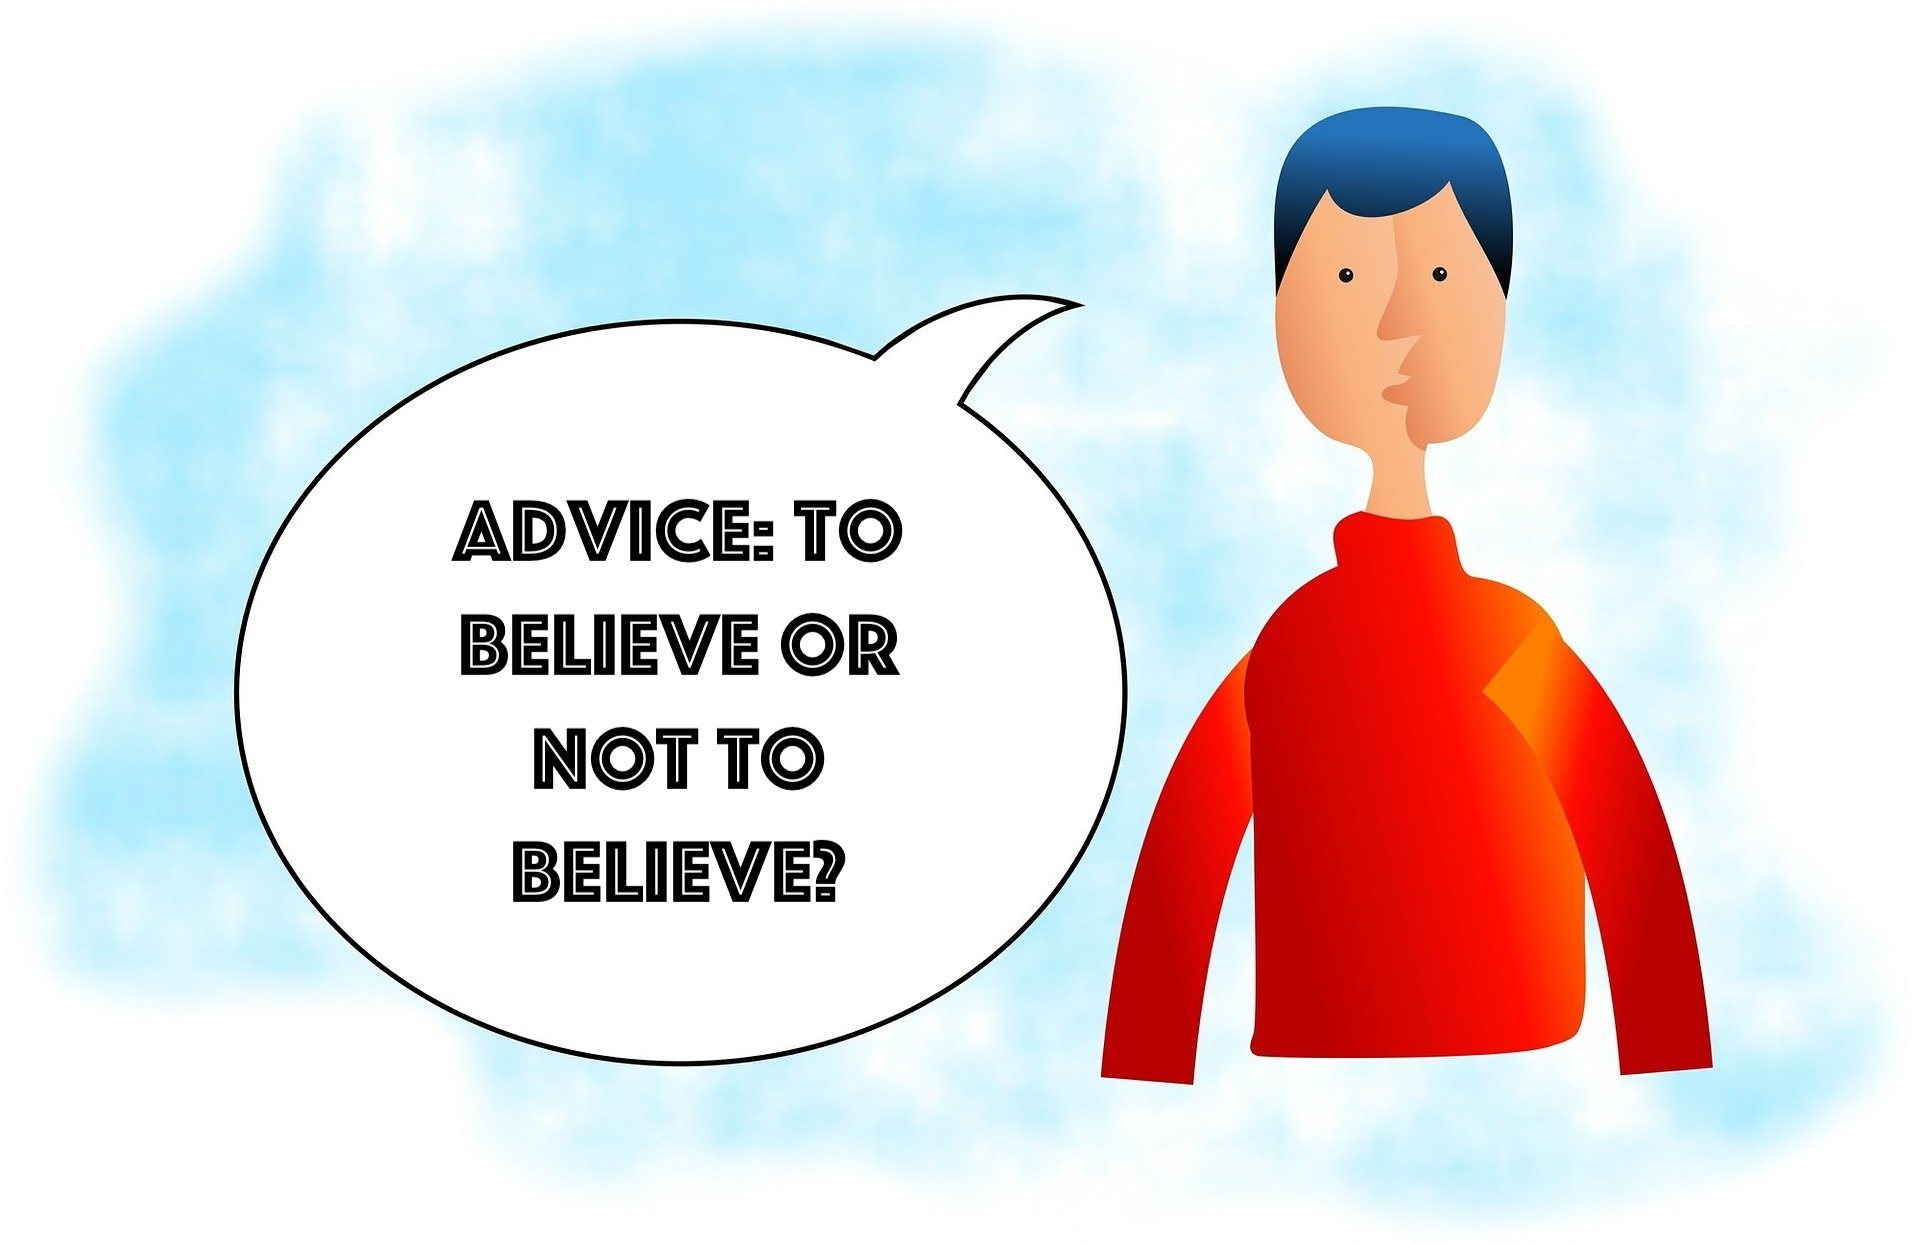 Advice: To Believe or Not to Believe?